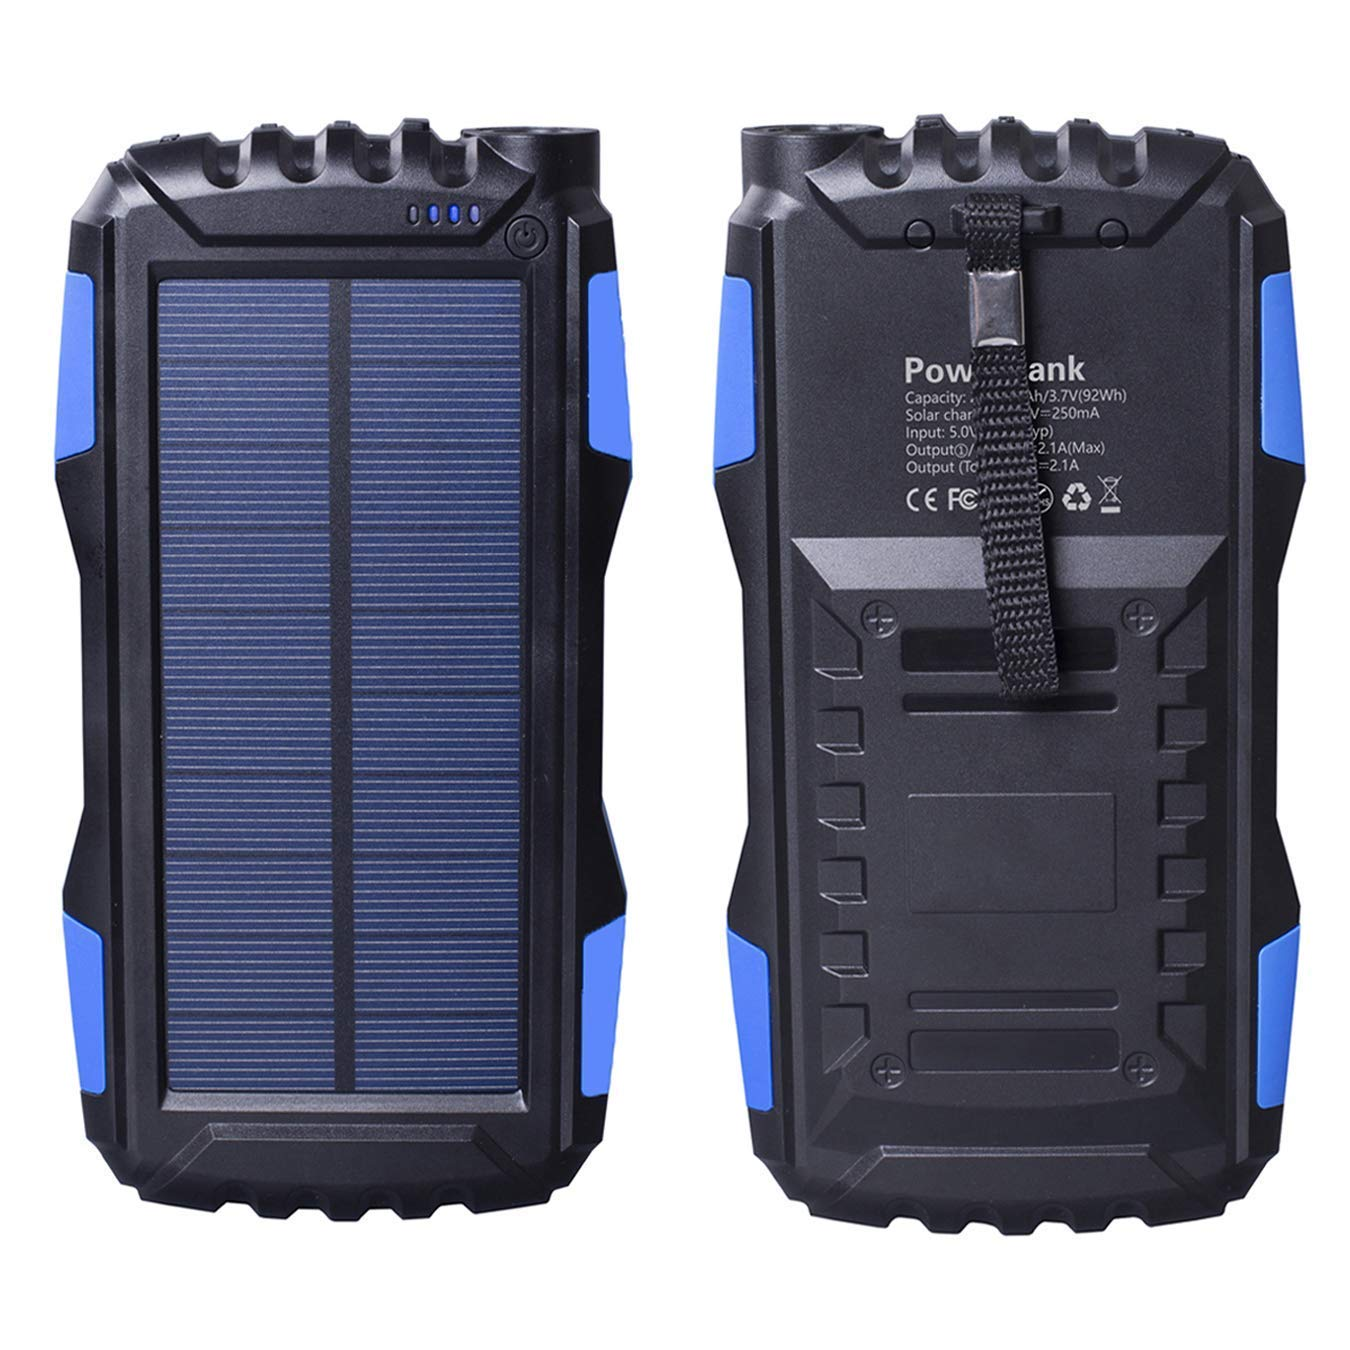 Best Rated In Solar Battery Chargers Charging Kits Helpful 12v Charger Circuit Moreover The Usb Car Friengood Portable 25000mah Power Bank Waterproof External Pack With